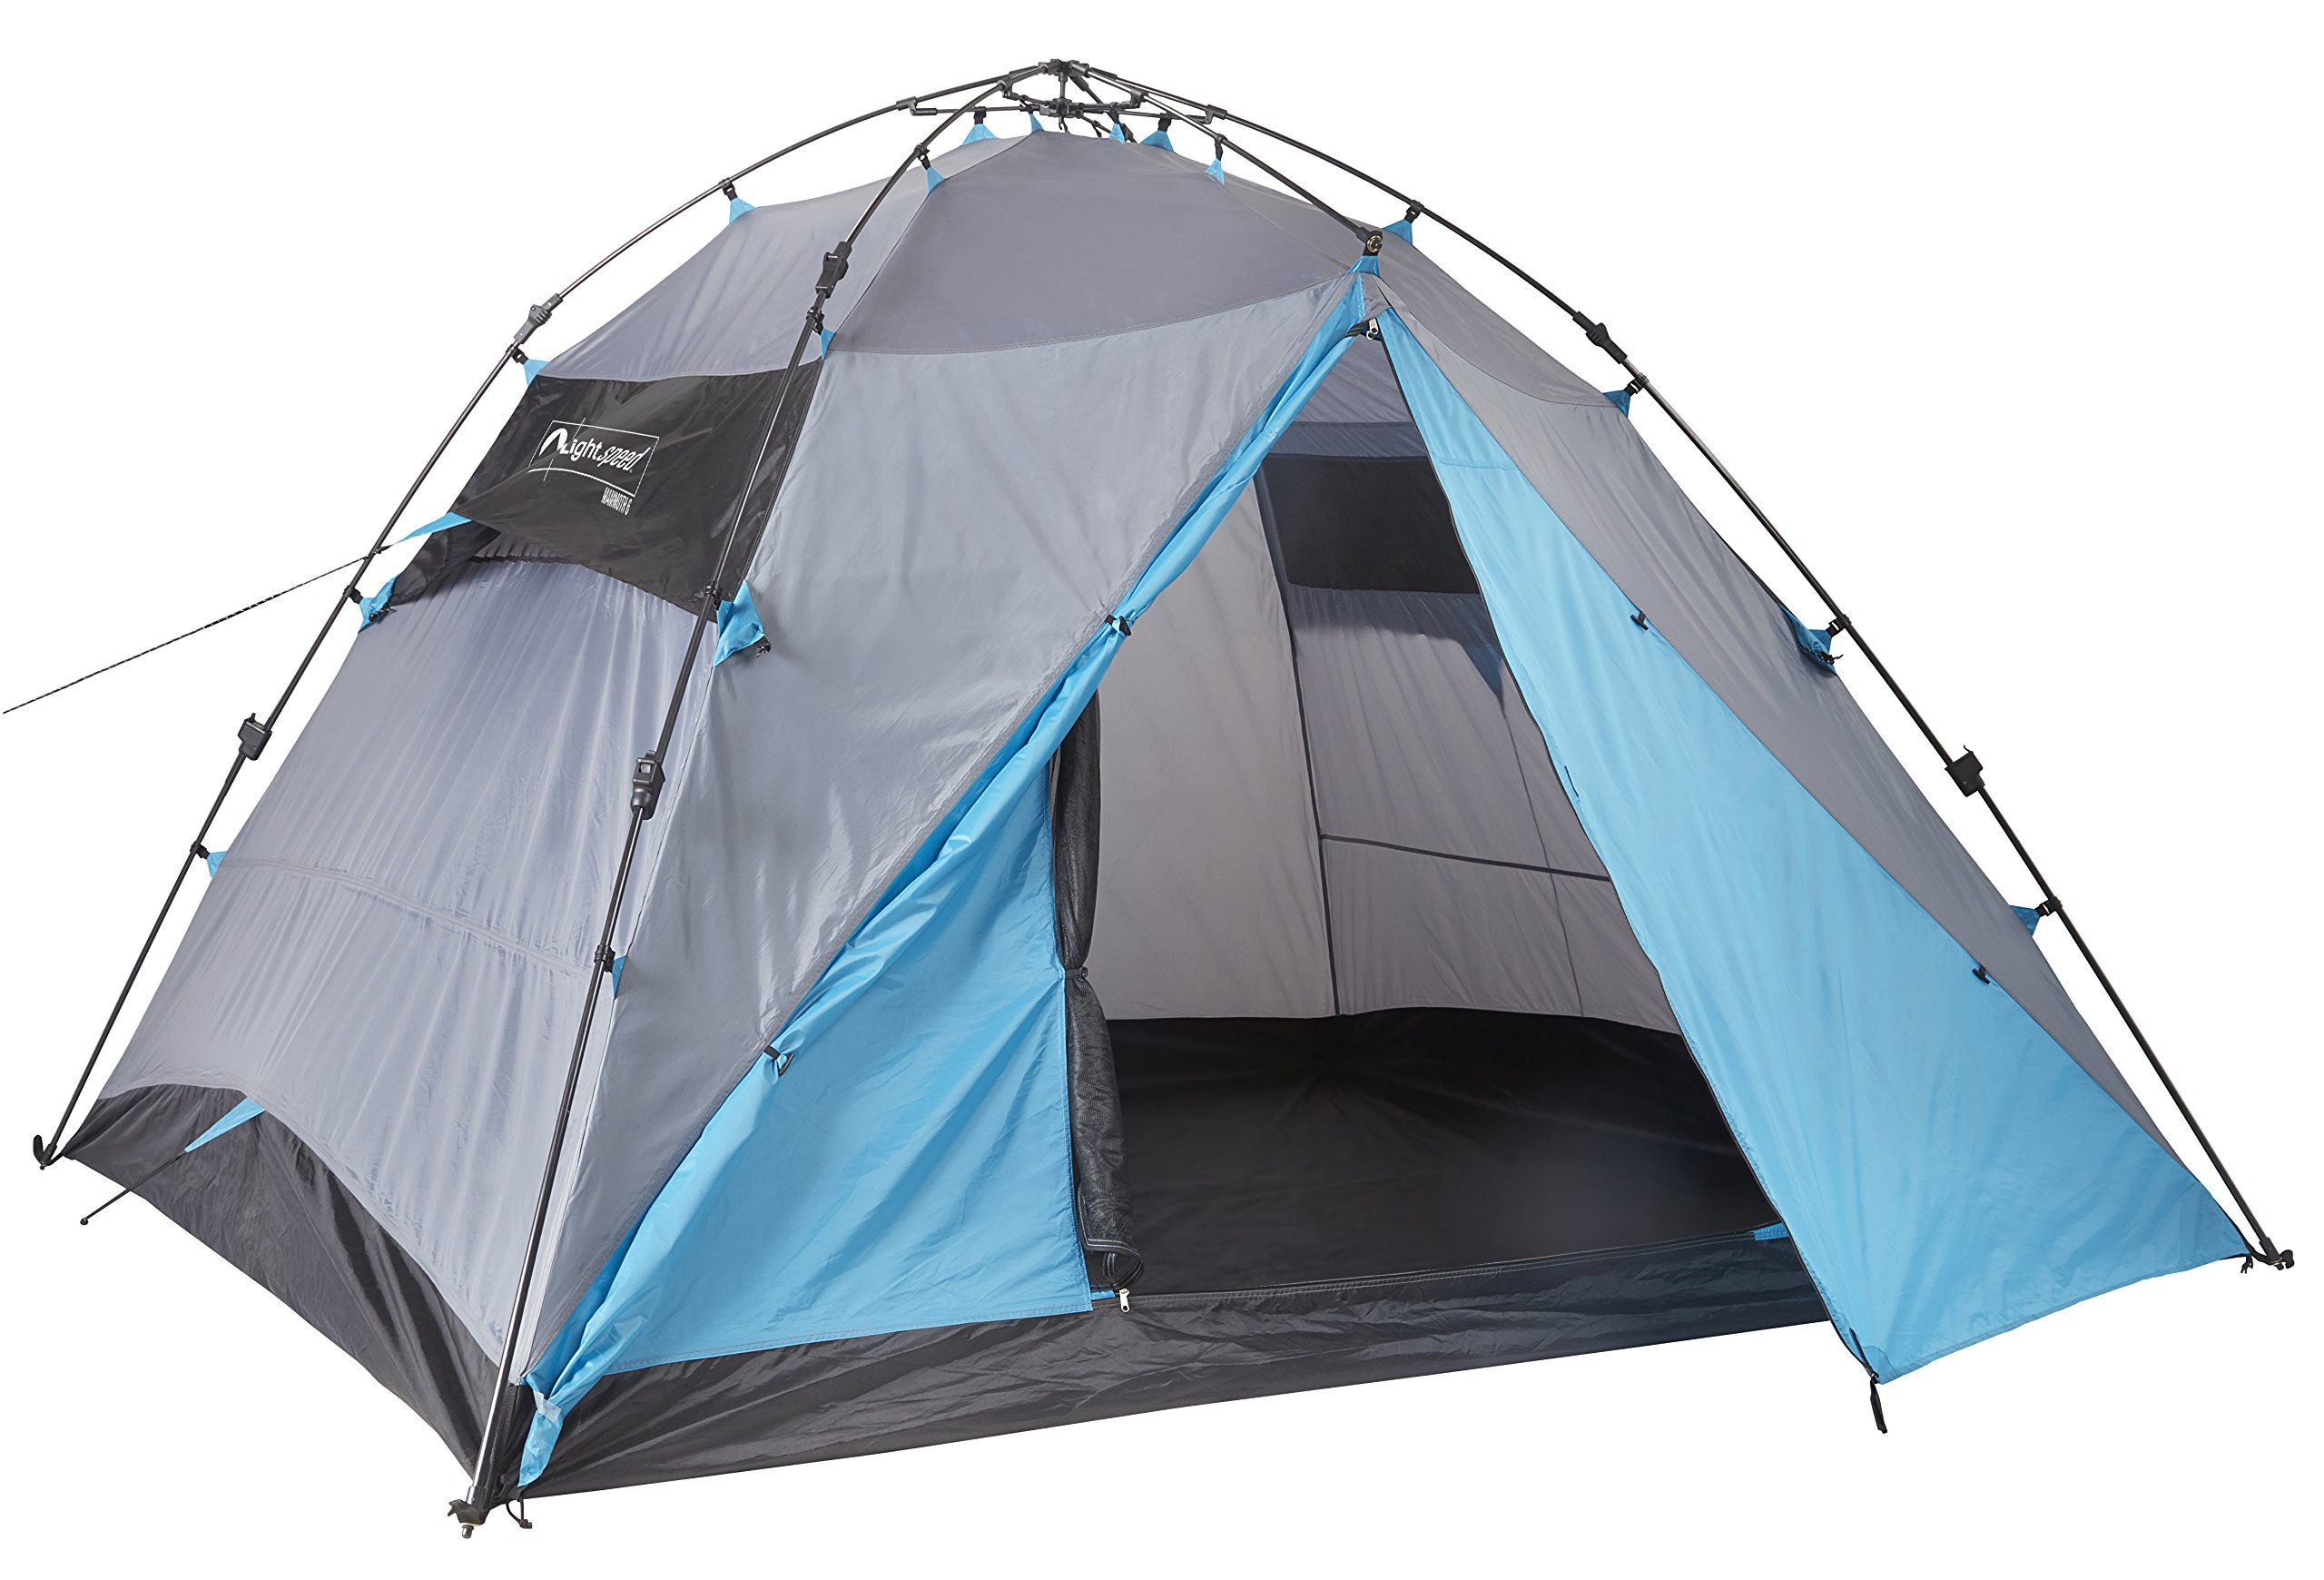 Lightspeed Outdoors Mammoth 6-Person Instant Set-Up Tent by Lightspeed Outdoors (Image #1)